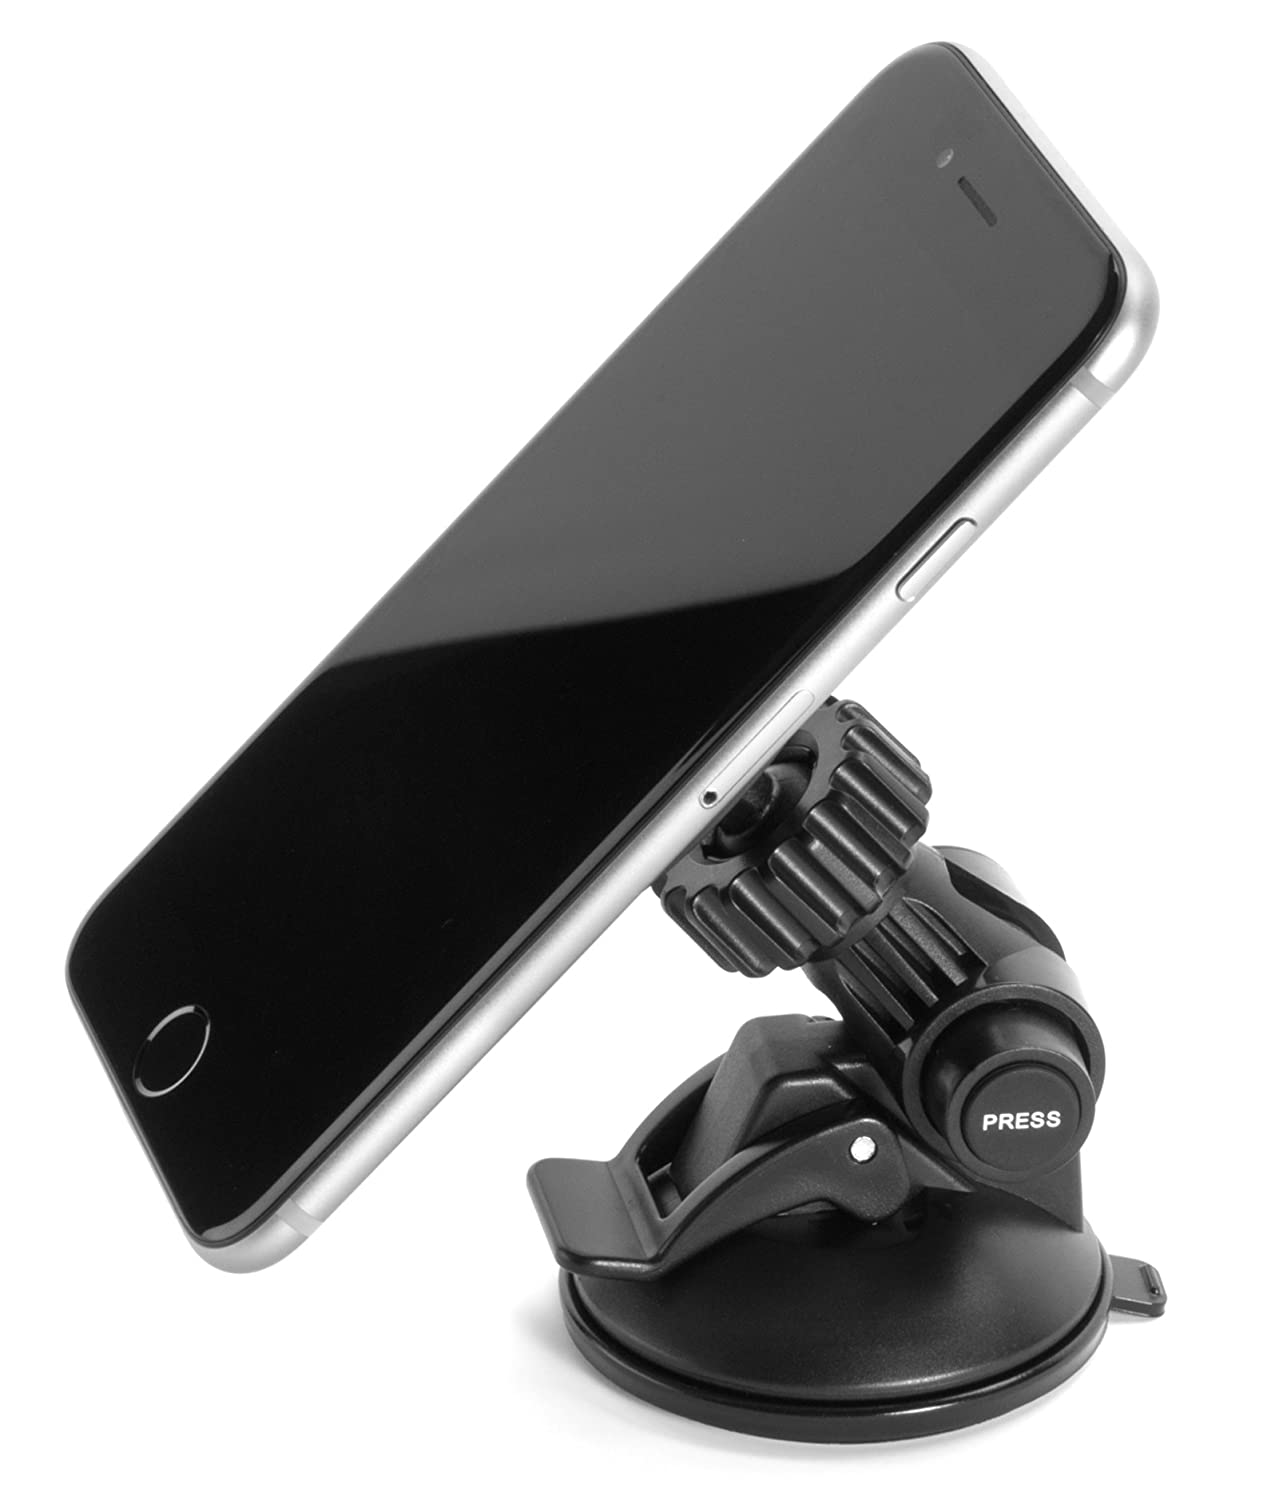 iPad // iPad 2 // iPad Air Galaxy S6//5//S4//S3 Nexus 5//4 5s // 5c iPad mini 4s LG G3//2 BCM-101 Dashboard and Windshield Car Mount for iPhone 6 // 6+ Note 4//3//2 Bovee Universal Smartphone and Tablet Car Mount for Any Device Any Size